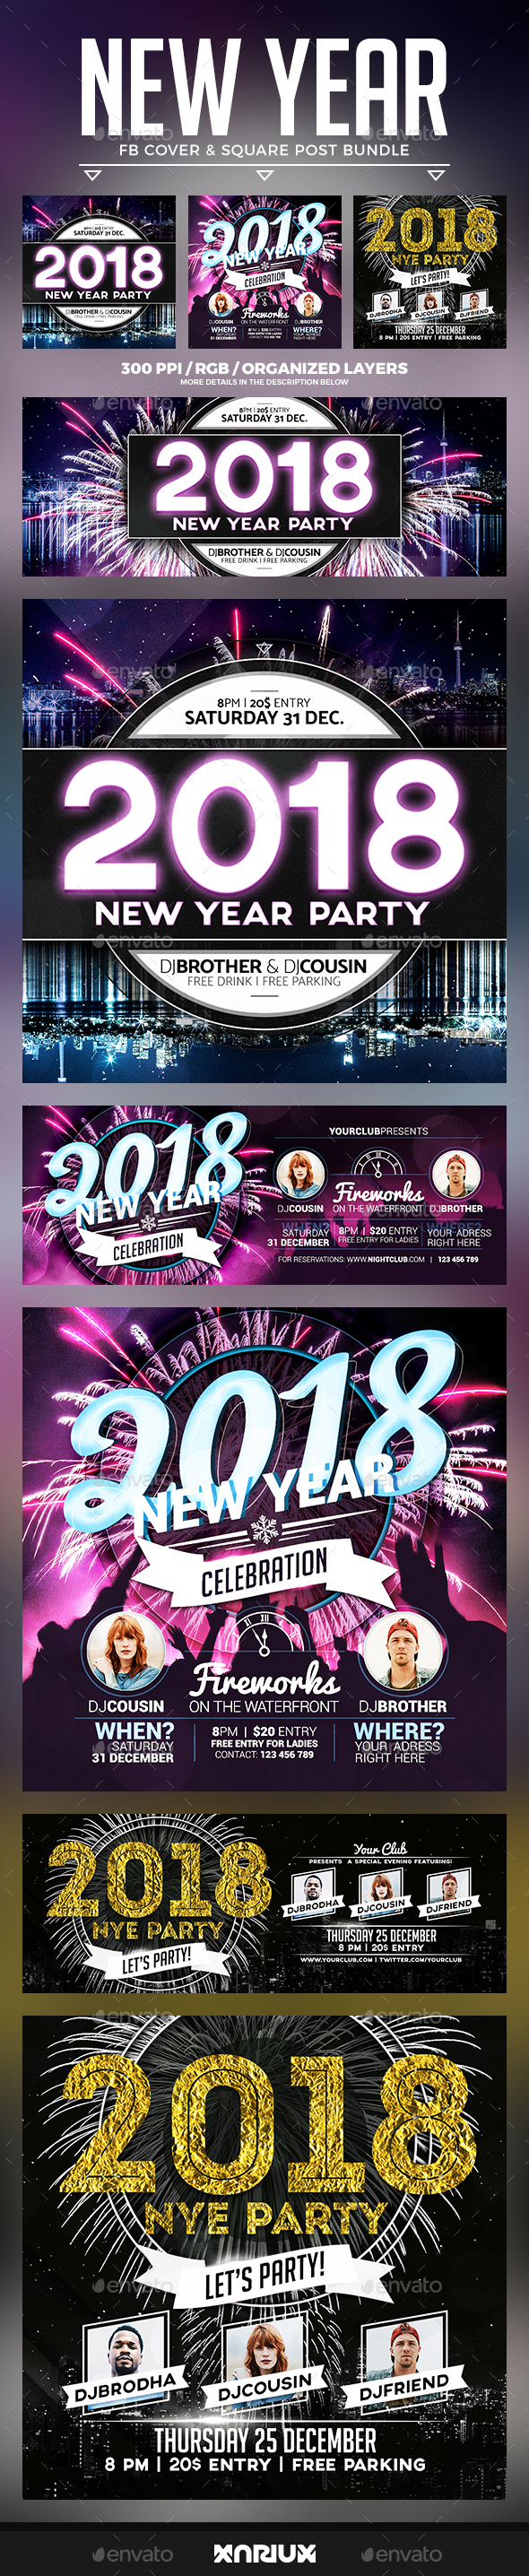 New Year Facebook Cover Bundle - Social Media Web Elements